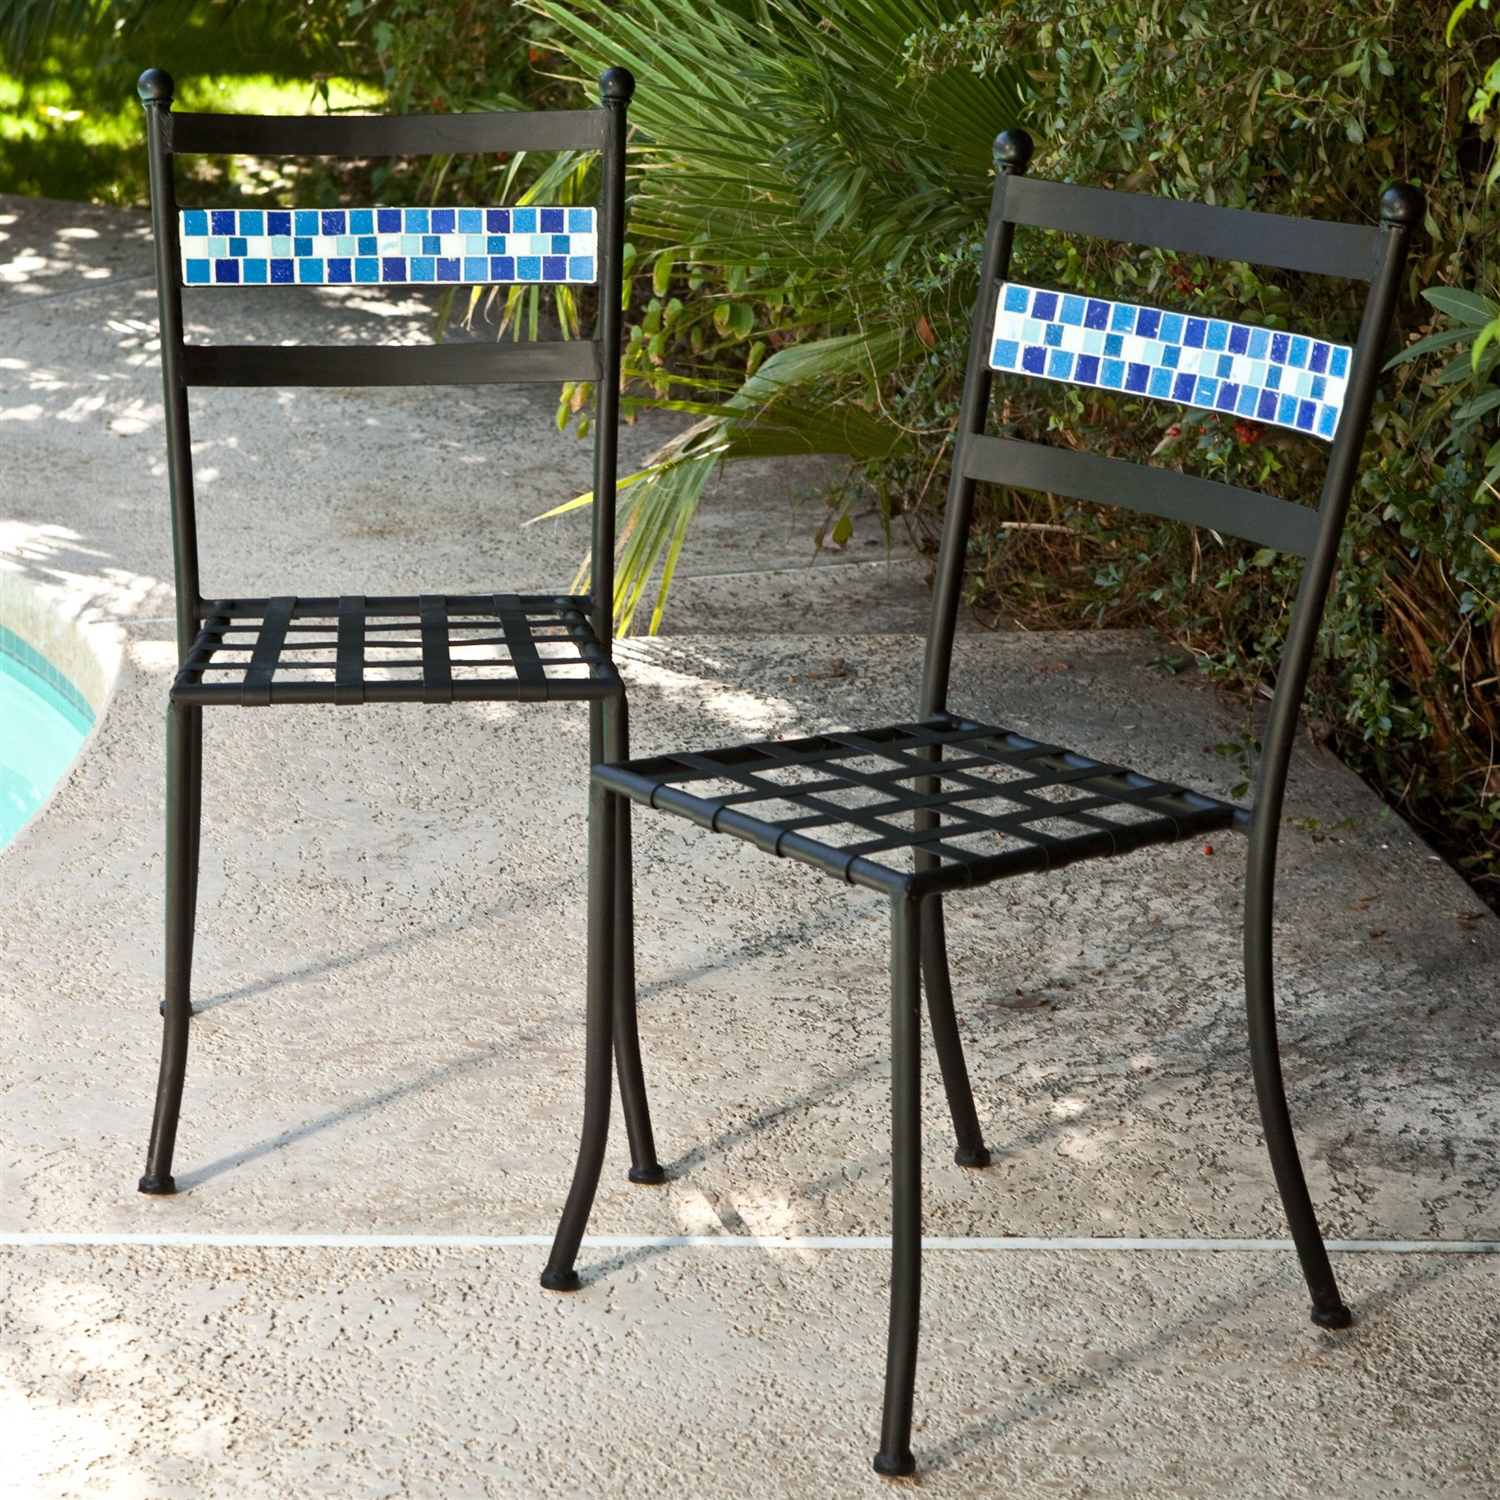 Set of 2 black powder coated iron metal patio bistro chairs with aqua blue backrest